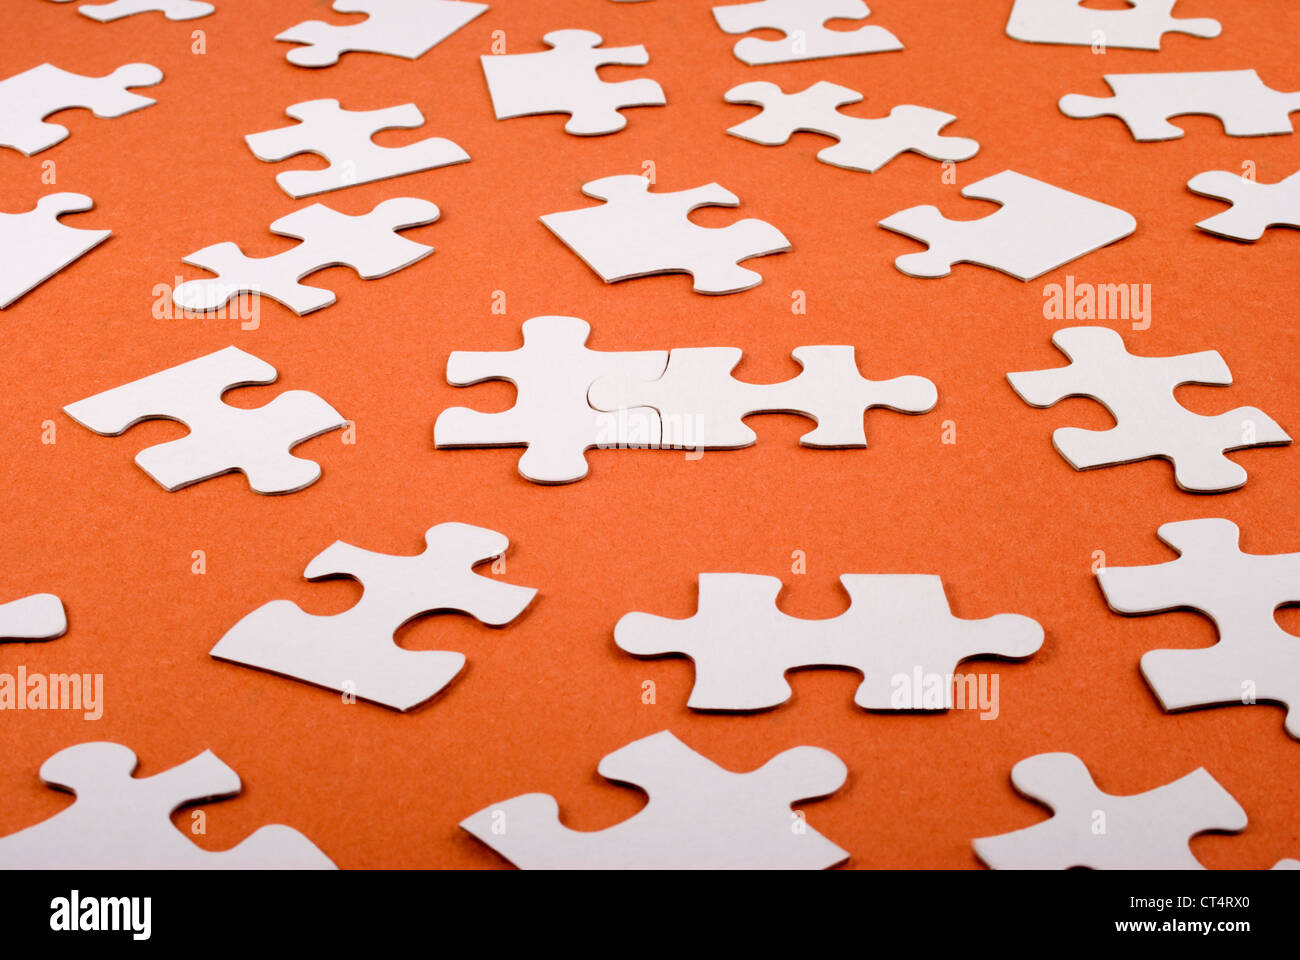 Lots of jigsaw pieces spread out, with two joined together - Stock Image